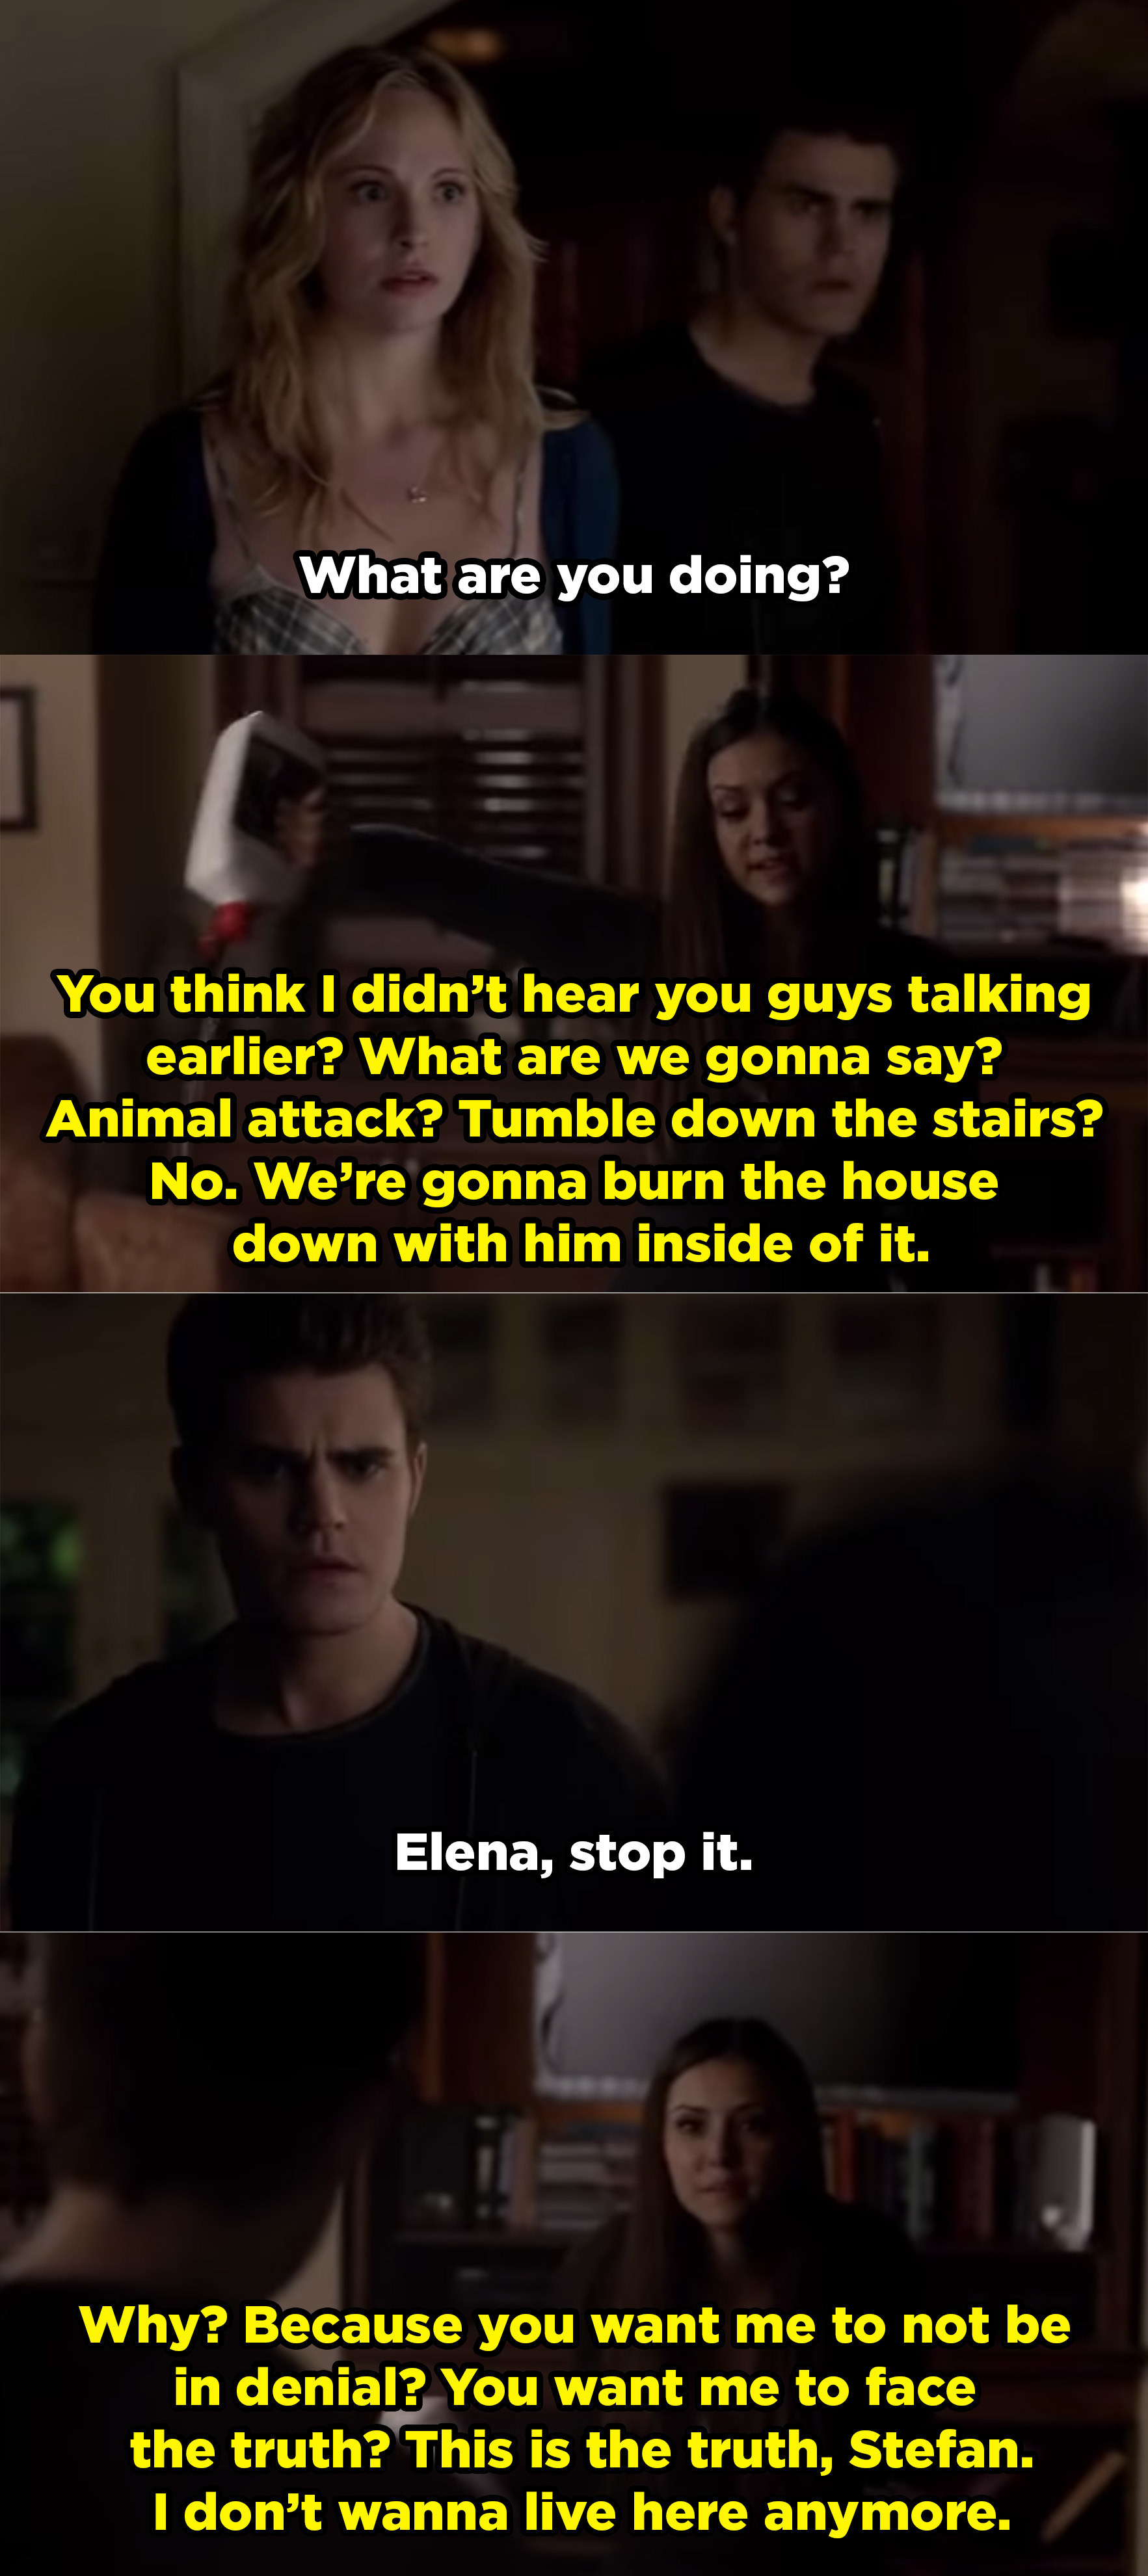 Elena tells Stefan she's gonna burn down her house because her brother died.